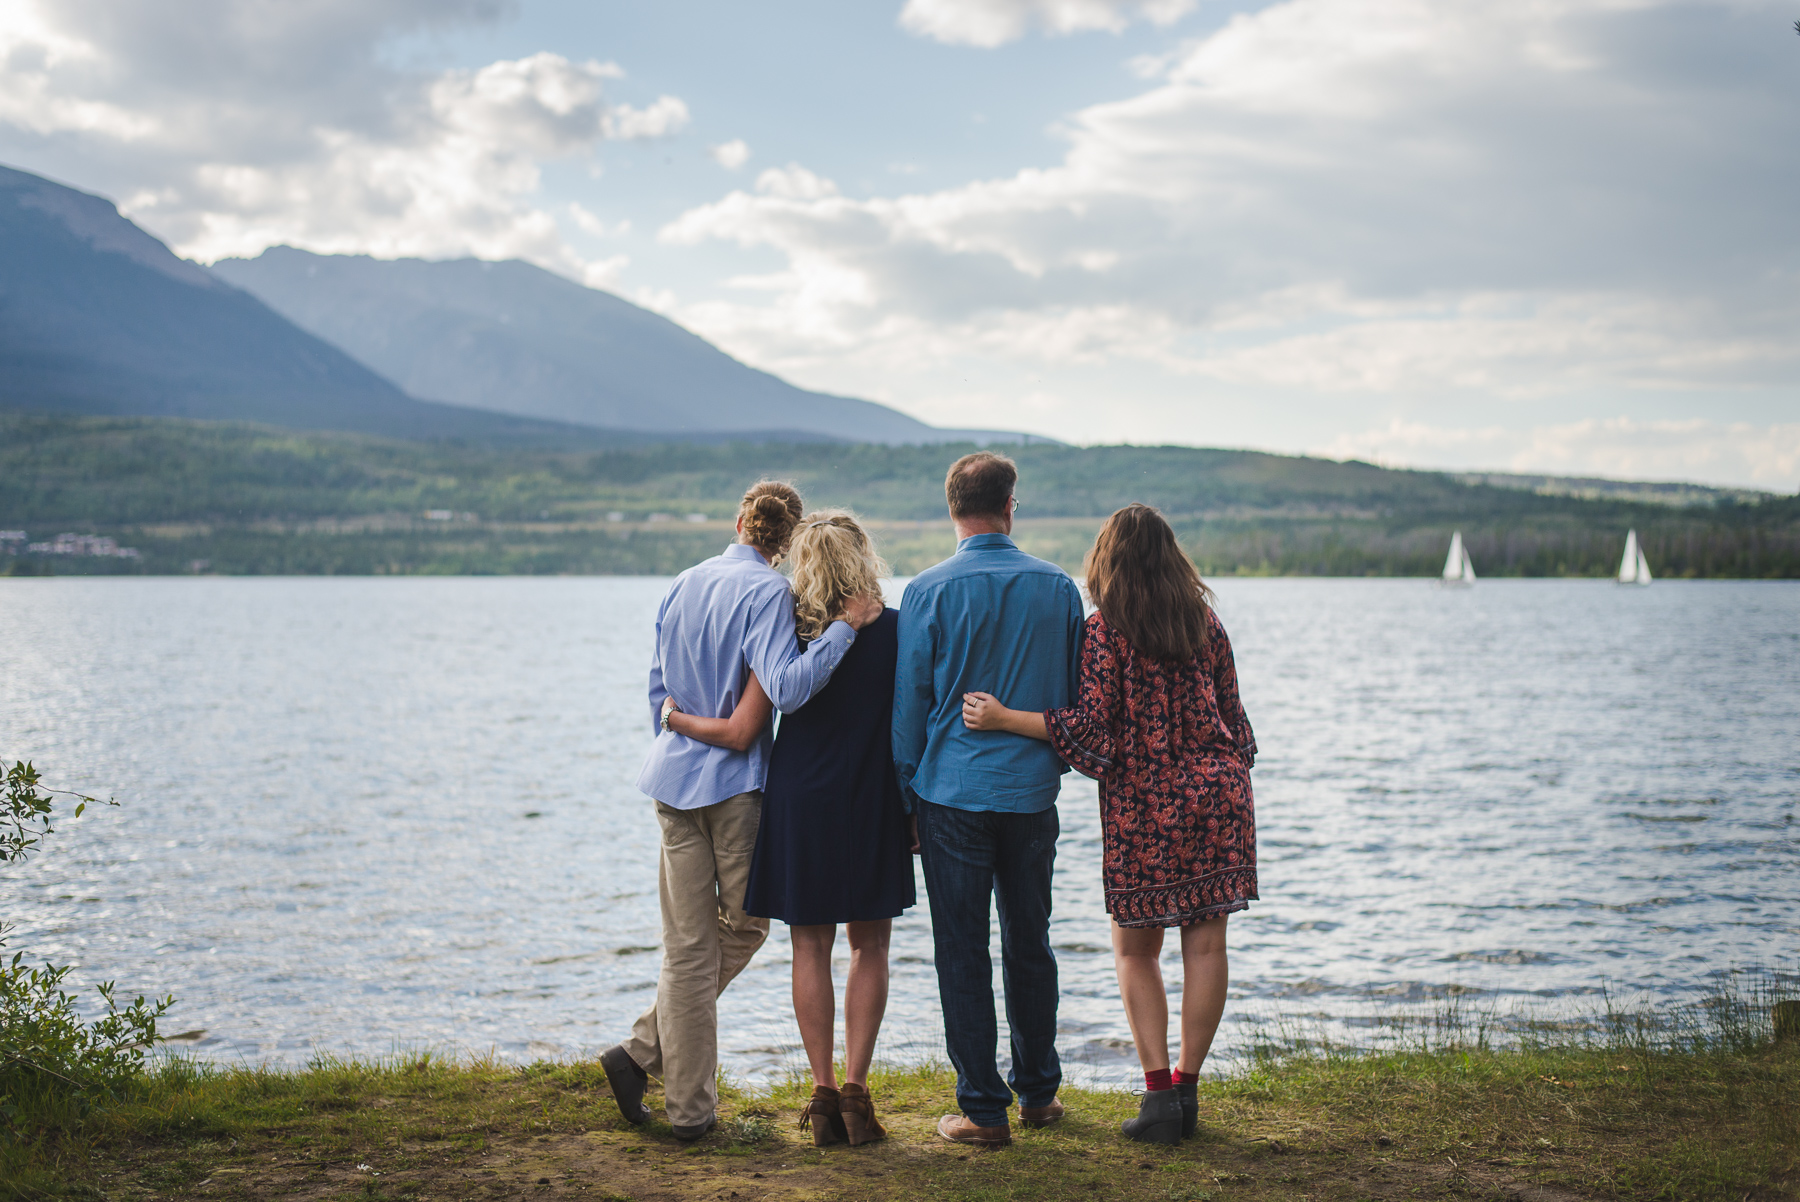 Summer at the Lake: Frisco Family Portraits by Keeping Composure Photography, a Colorado Rocky Mountain photographer